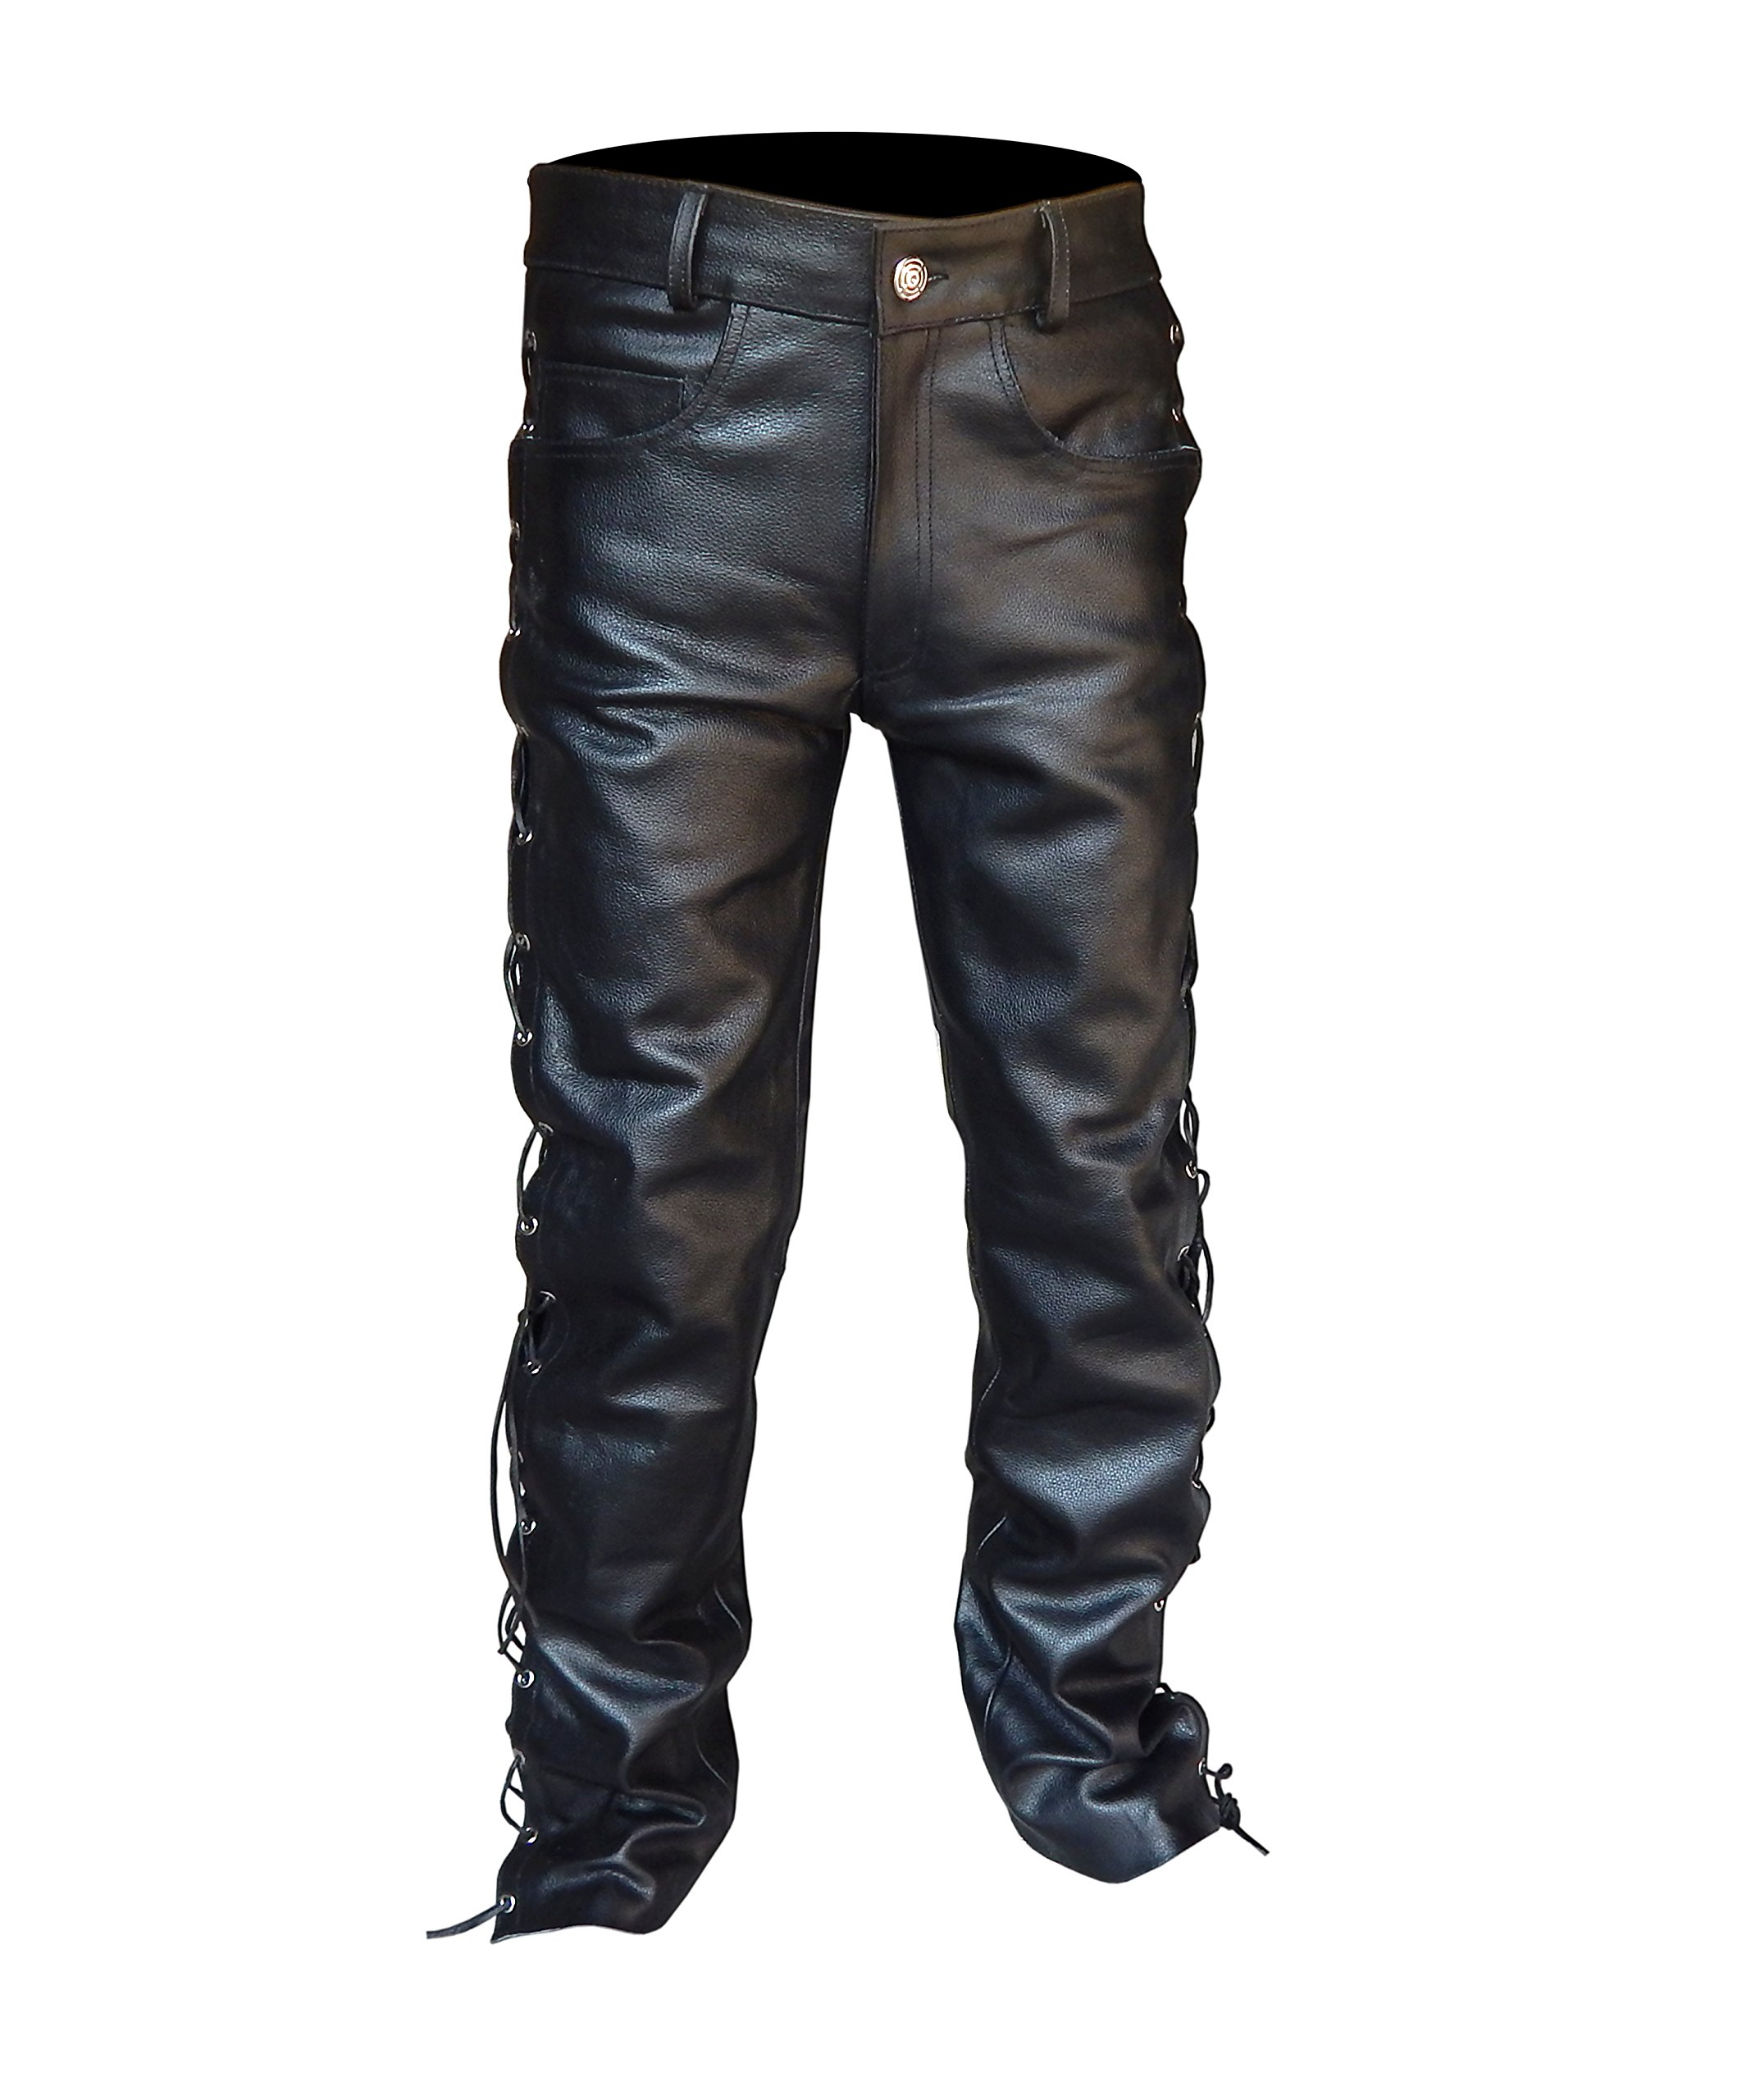 2Fit Men's Thick Cowhide Leather Side Laces Jeans Model Pant Waist Size 30'' to 42'' (42'' Waist)